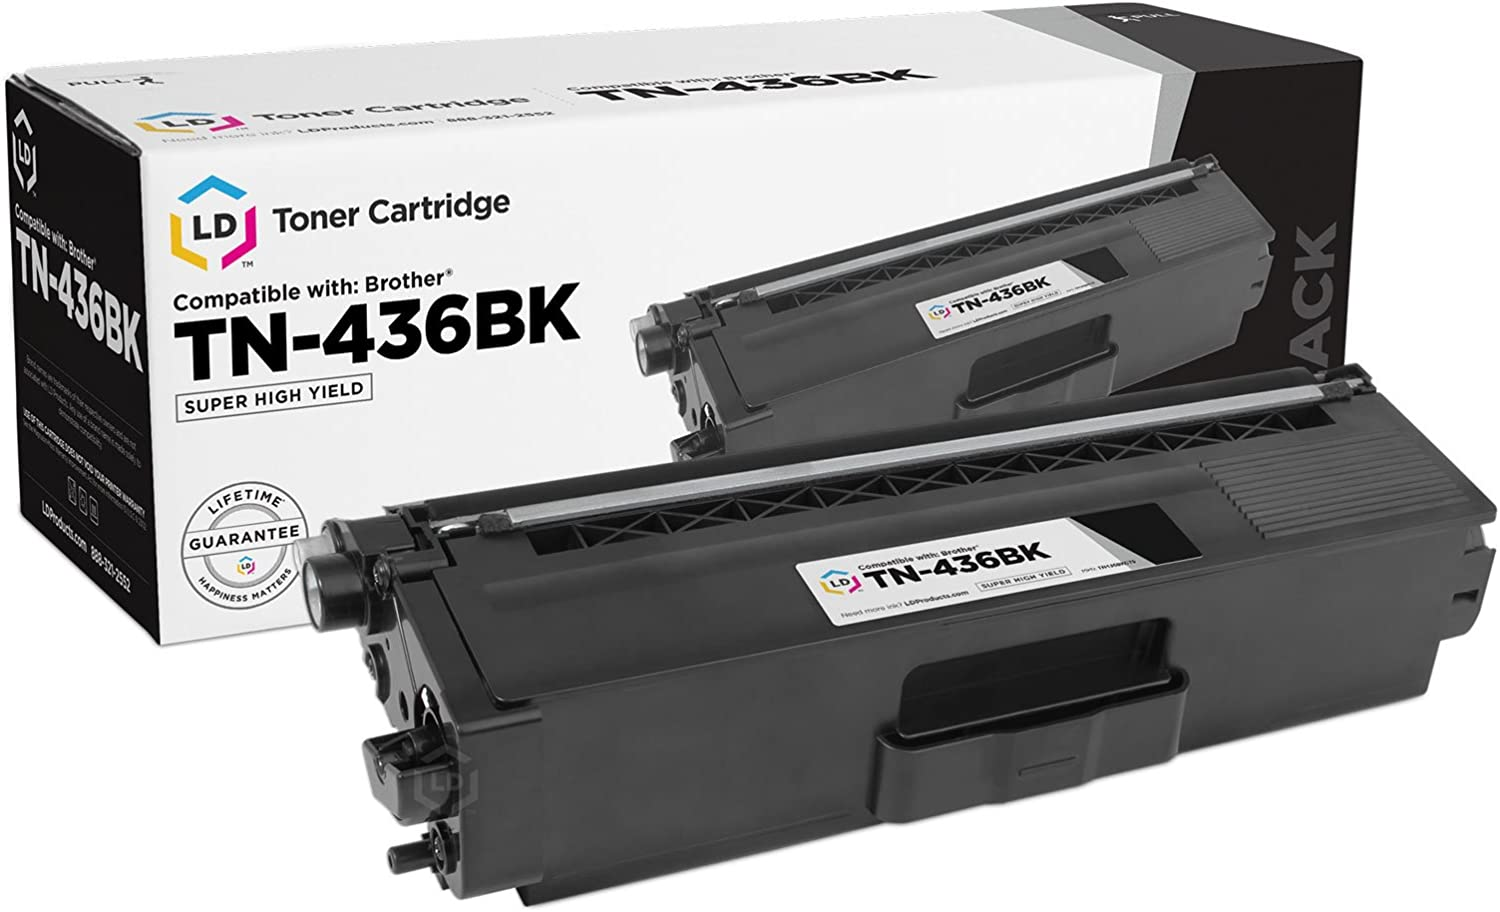 LD Compatible Brother TN436 TN436BK Super High Yield Black Toner 2PK